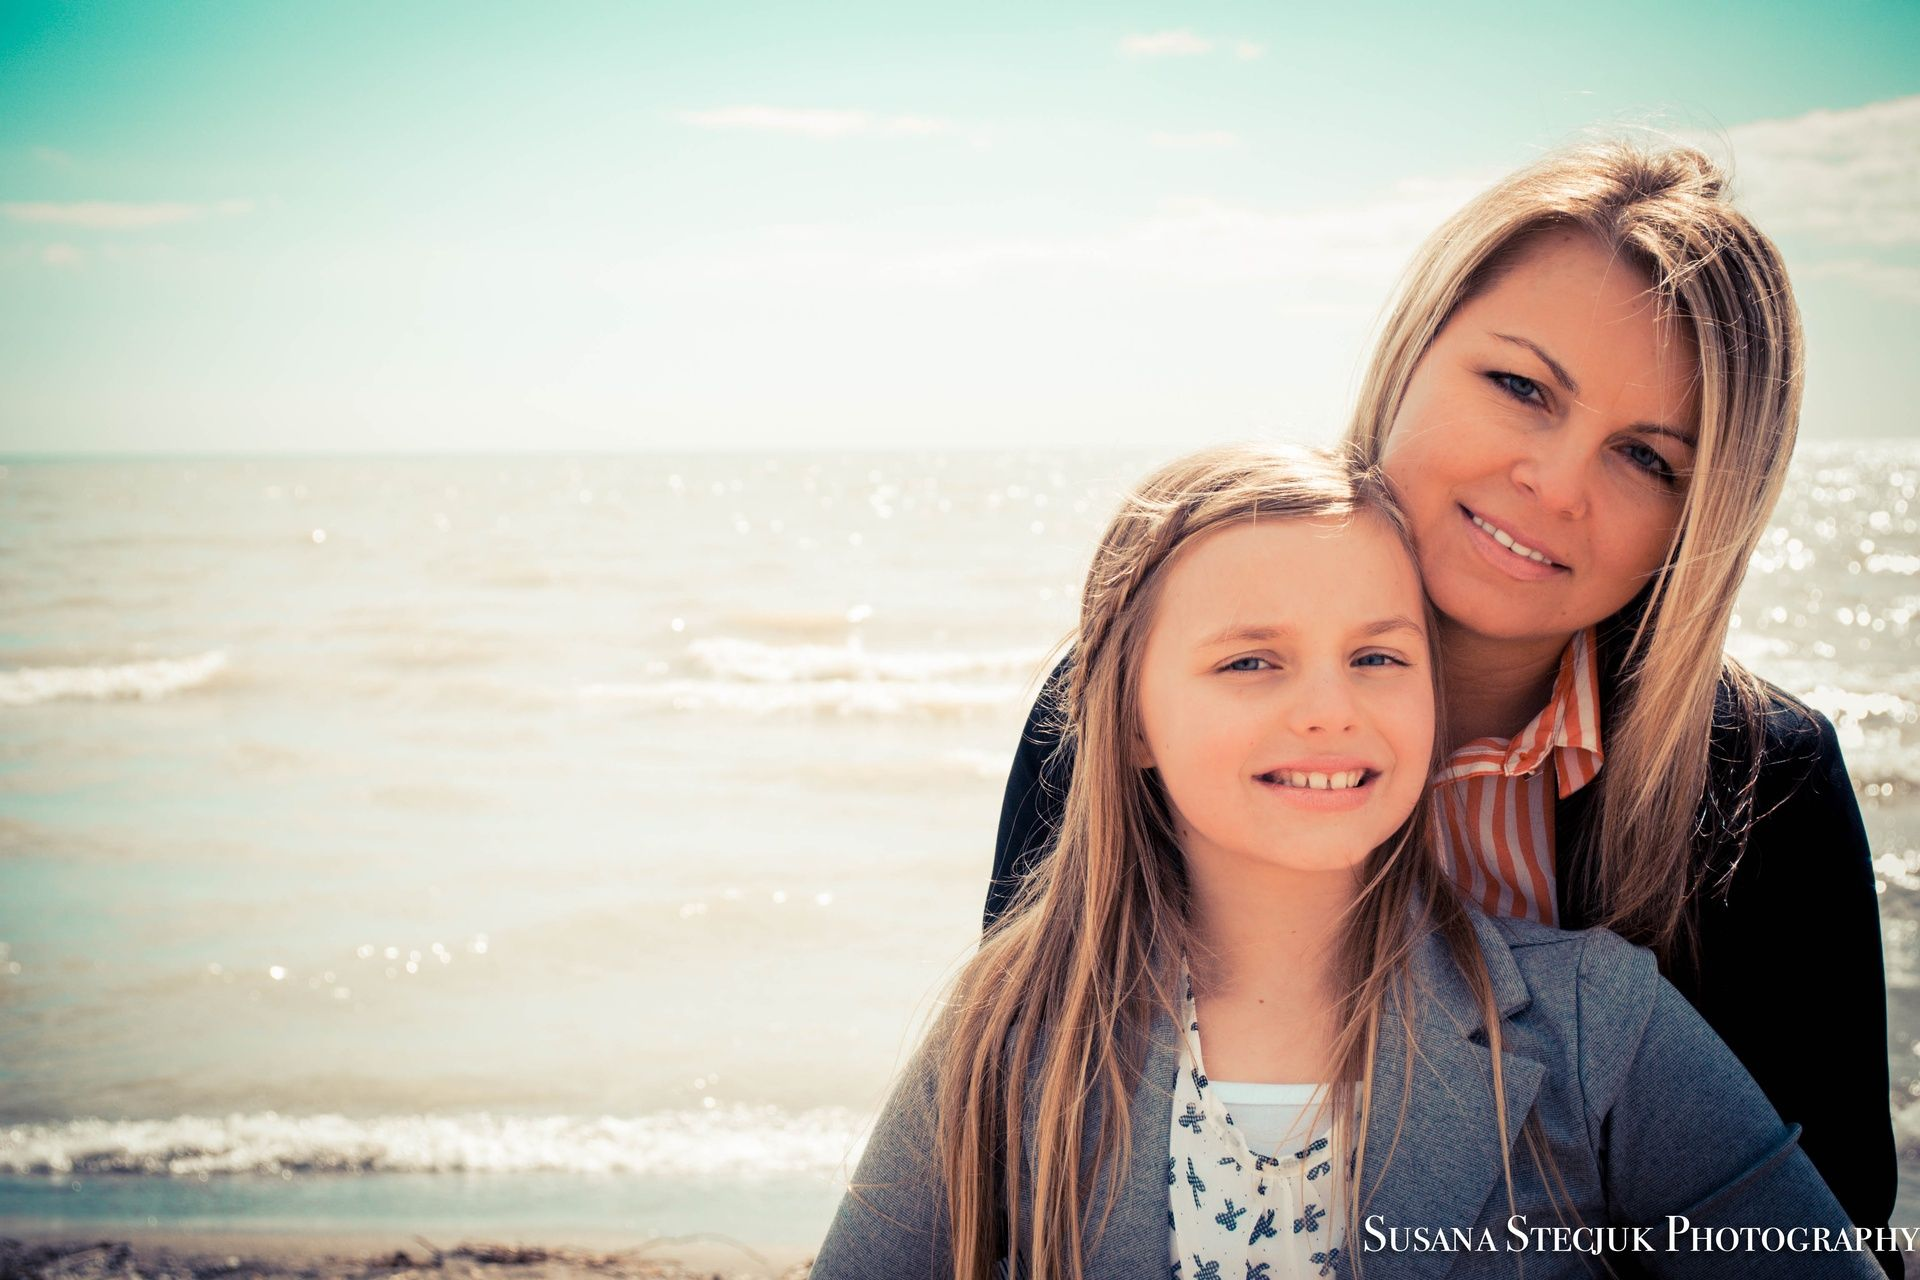 Mother daughter photography pose | what about sisters on